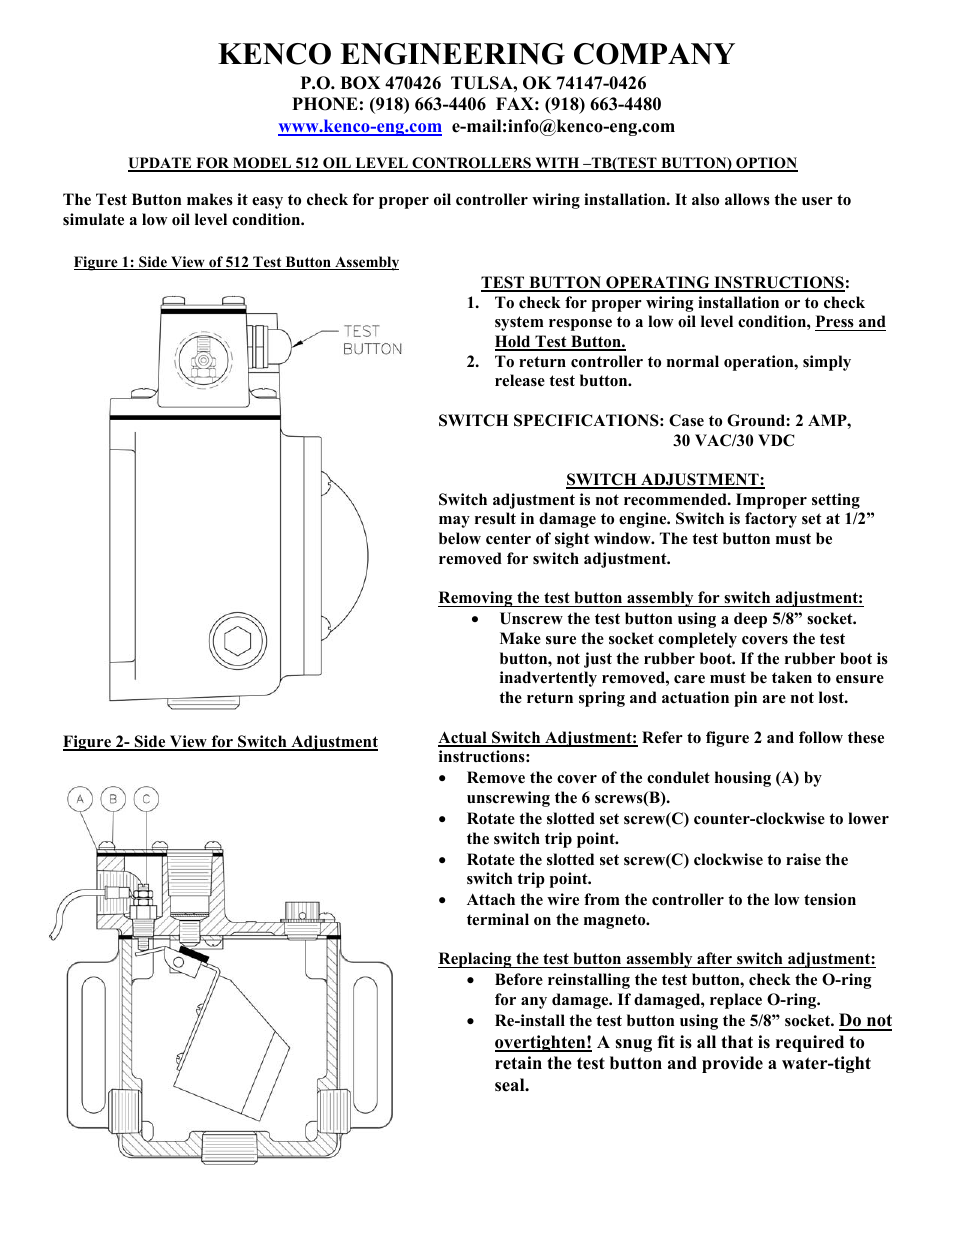 Kenco Engineering 512-TB (old style) User Manual | 1 page